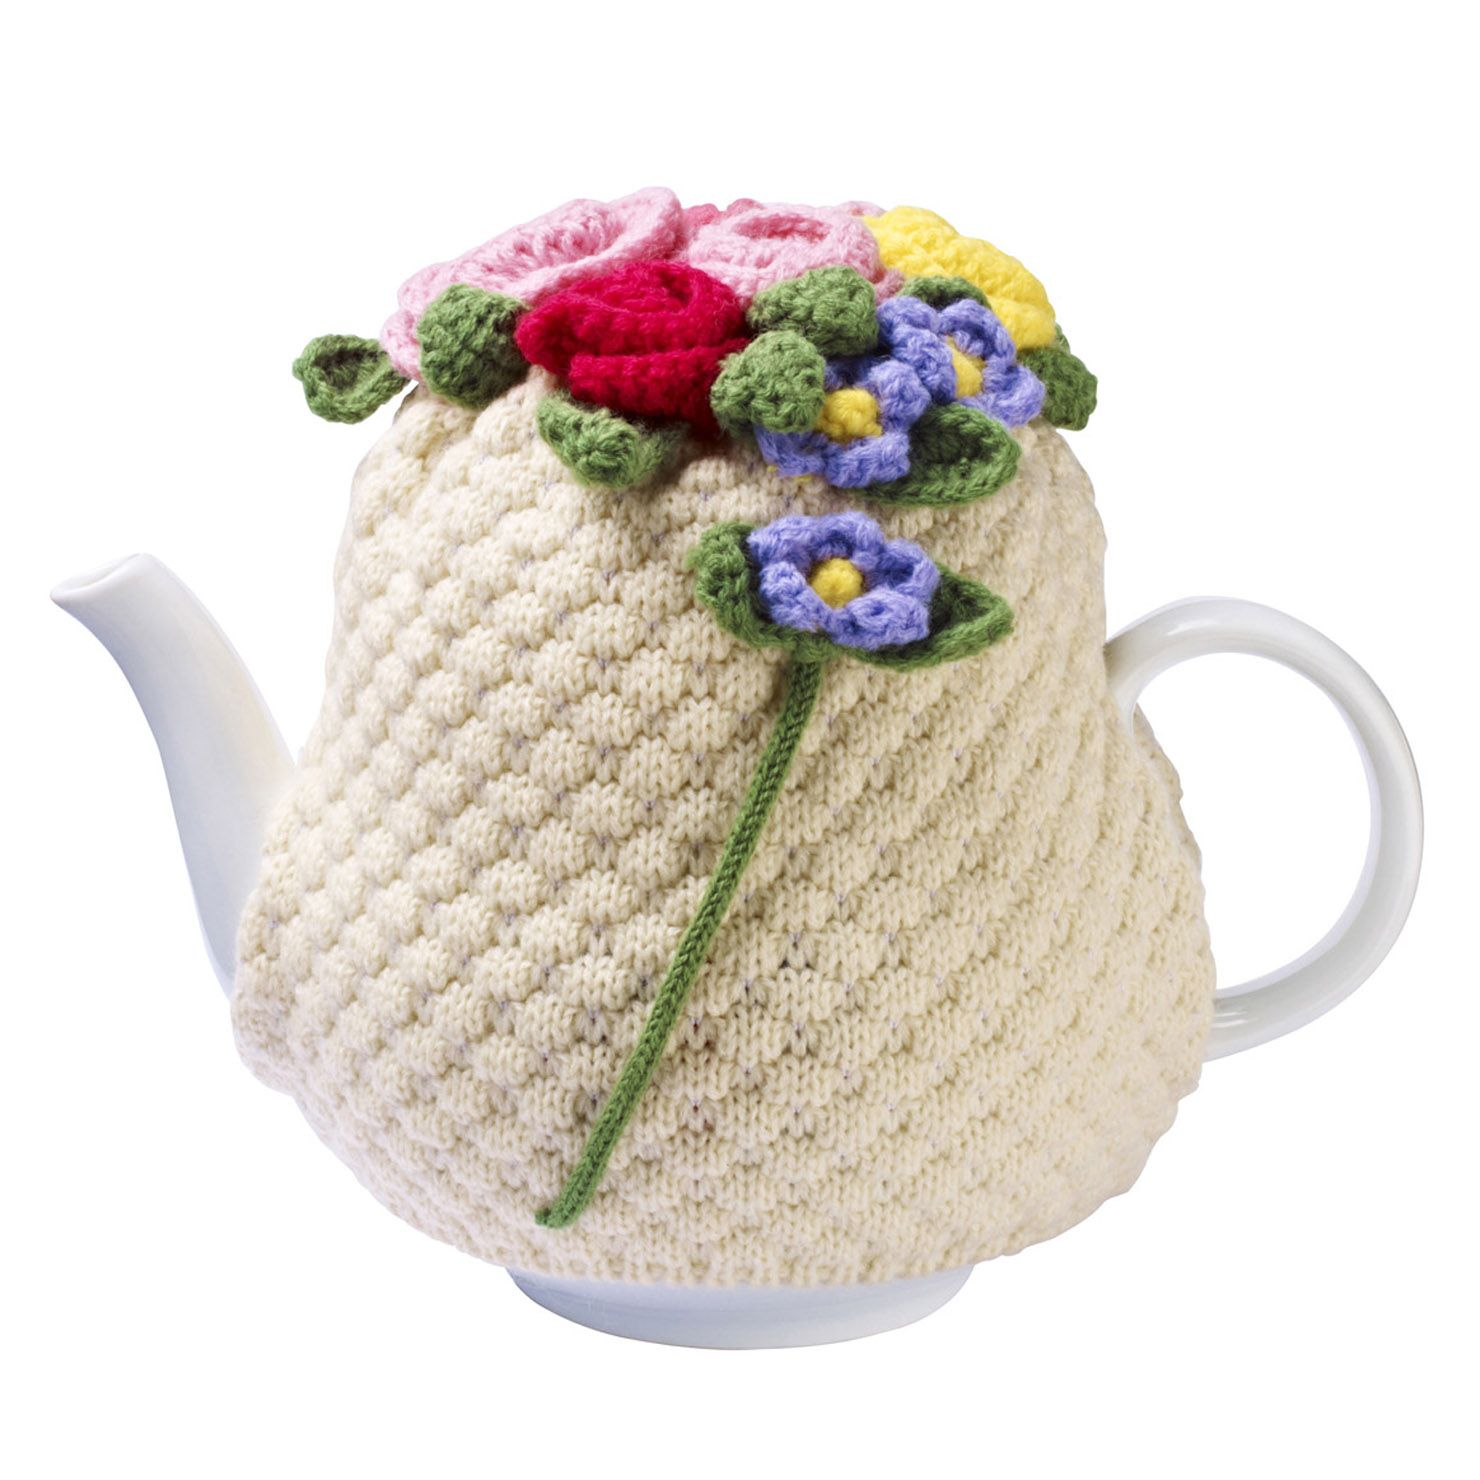 Ulster Weavers Horrockses Martha Knitted Tea Cosy | Teteras, Hora ...